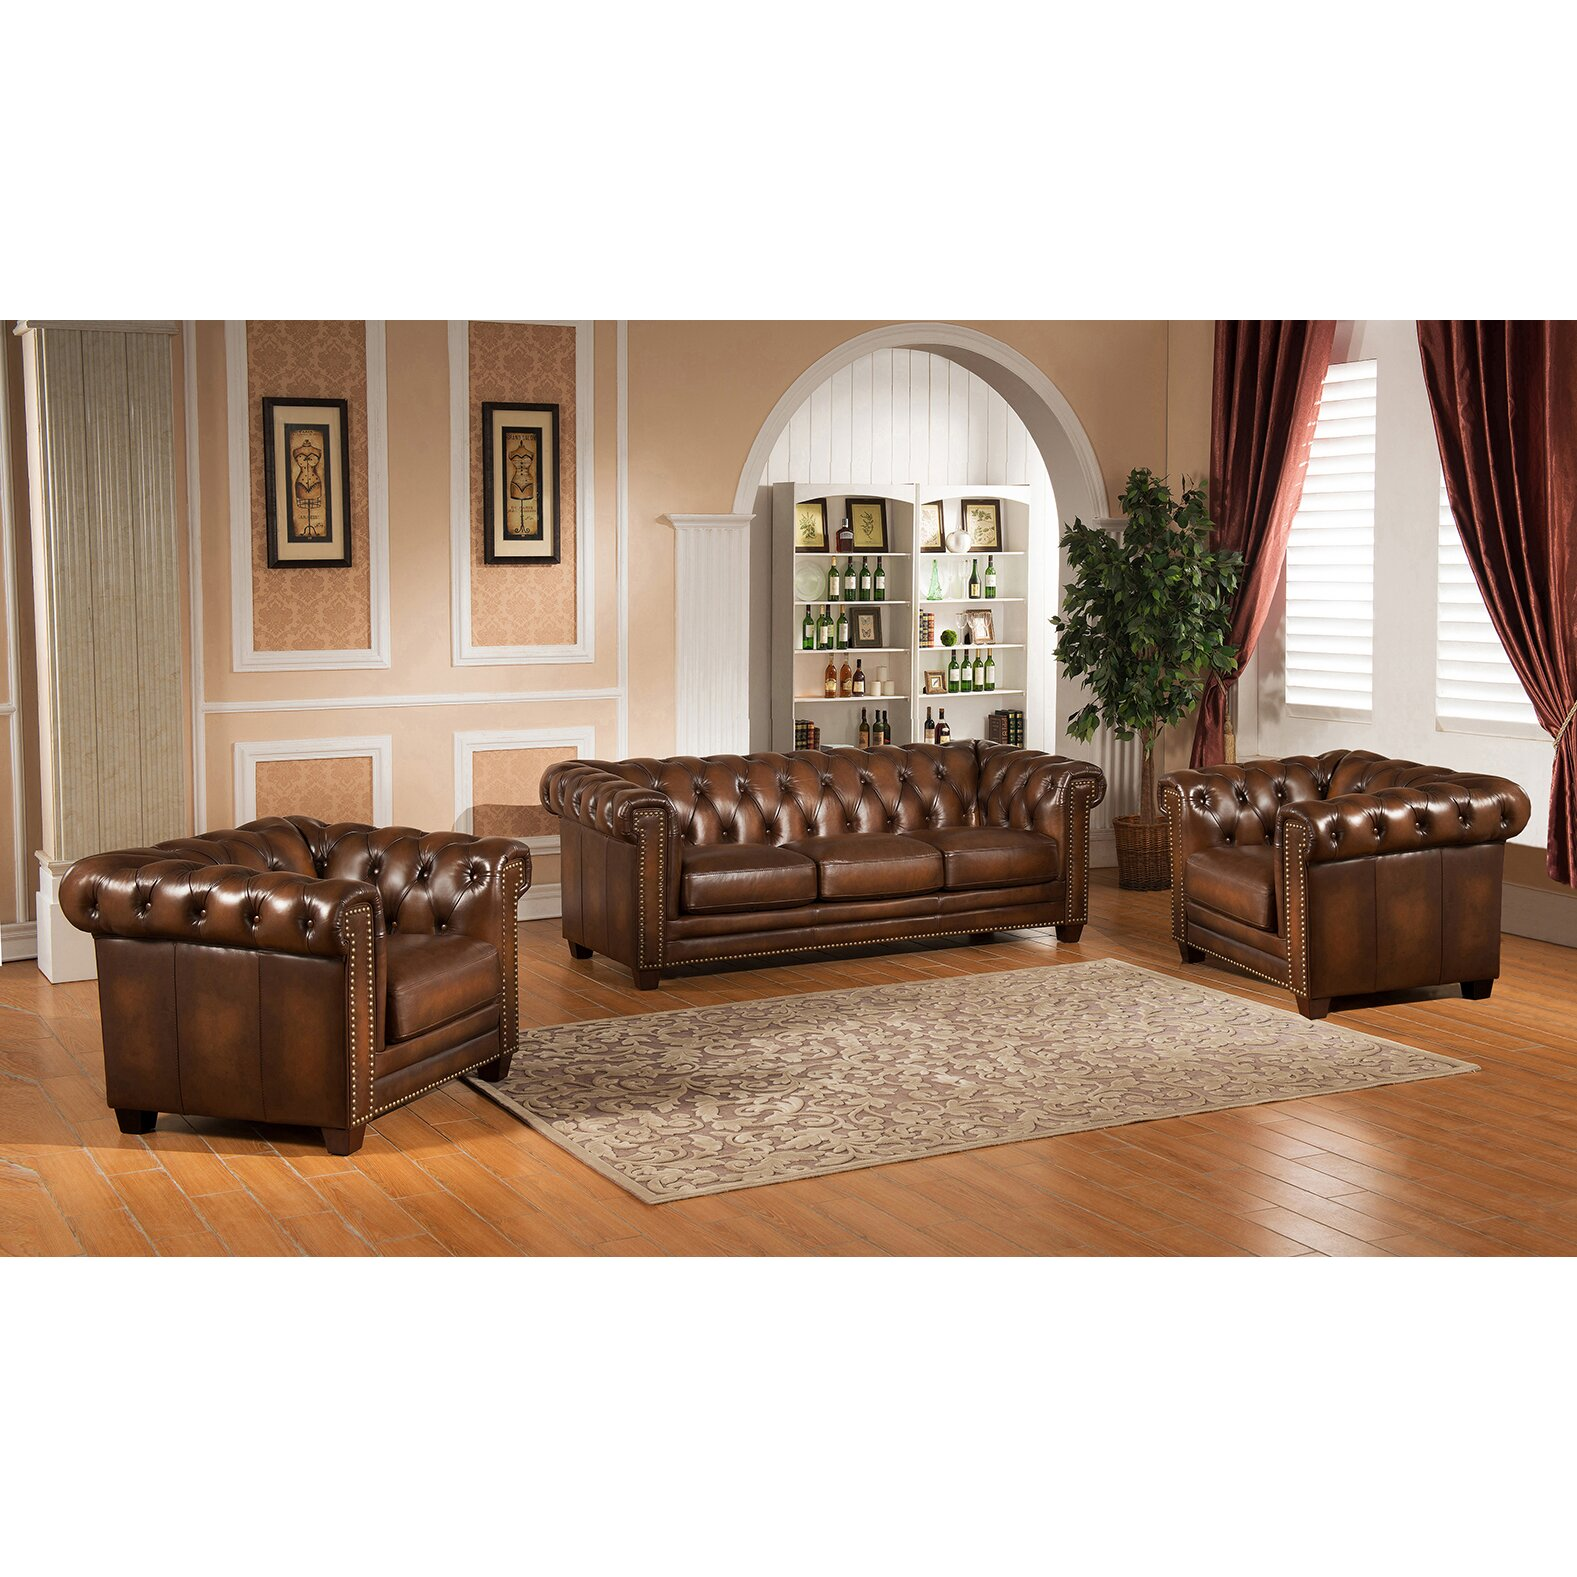 Amax hickory chesterfield genuine leather 3 piece leather living room set